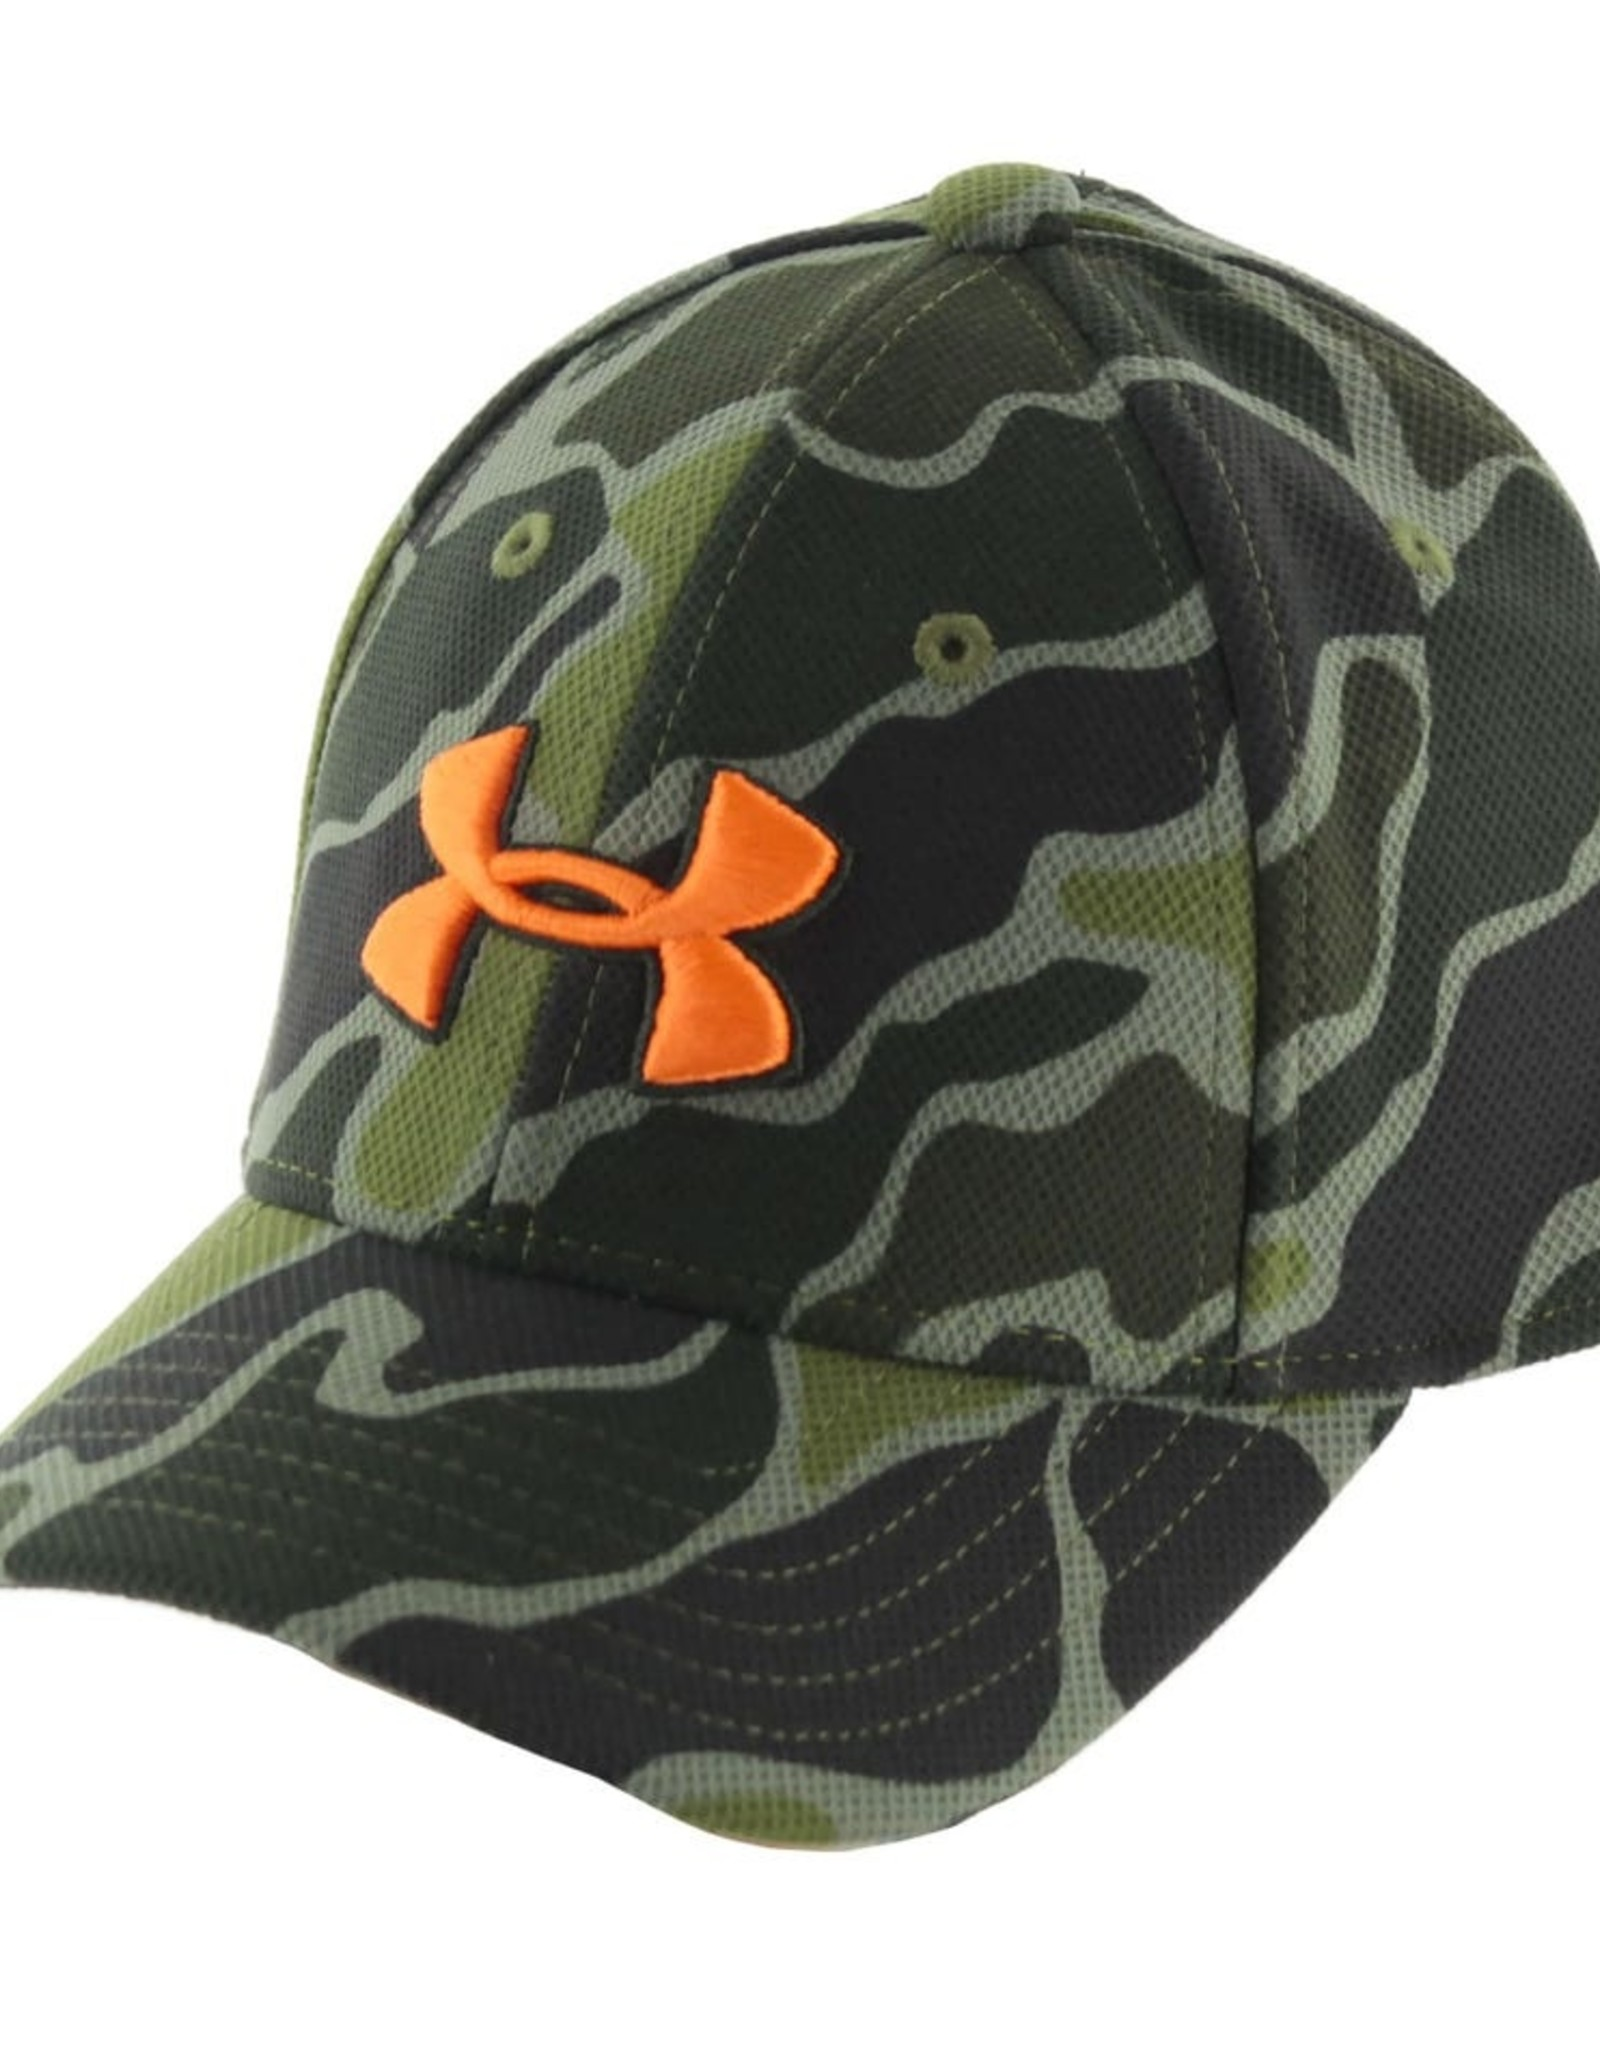 Under Armour Camo Diverge Blitzing Hat 1-3yrs